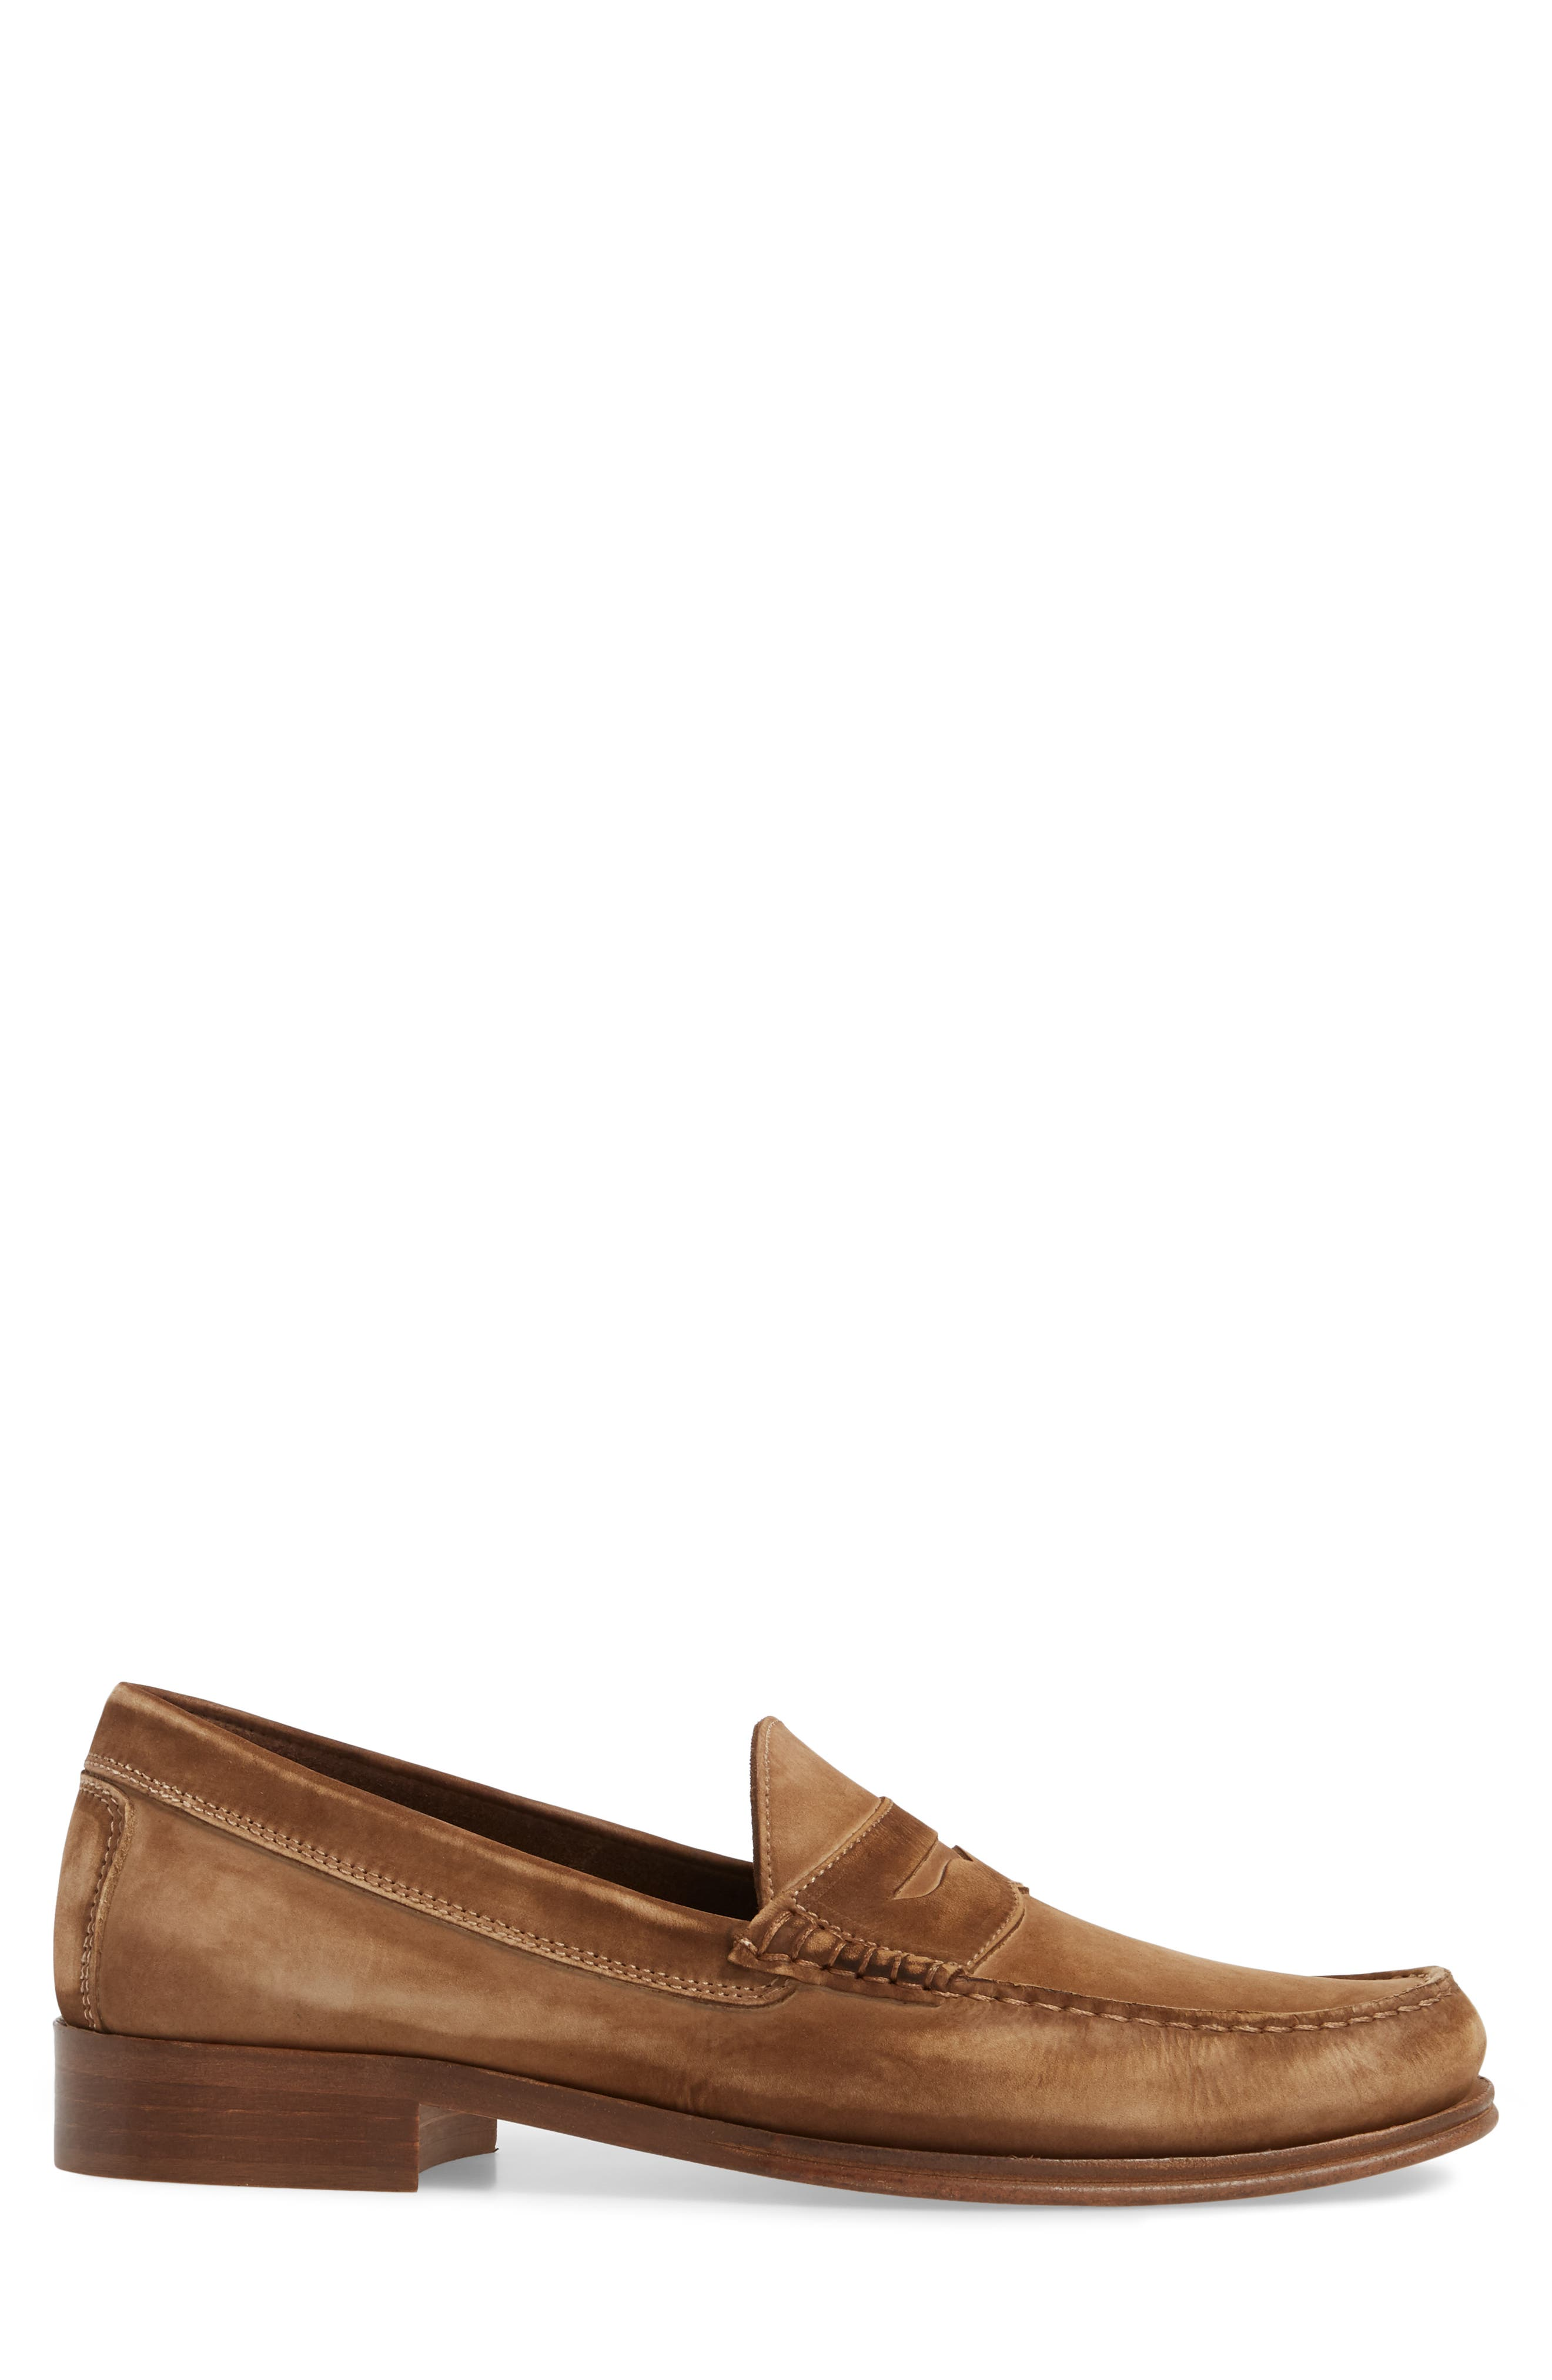 Nicola Penny Loafer,                             Alternate thumbnail 3, color,                             Chocolate Nubuck Leather